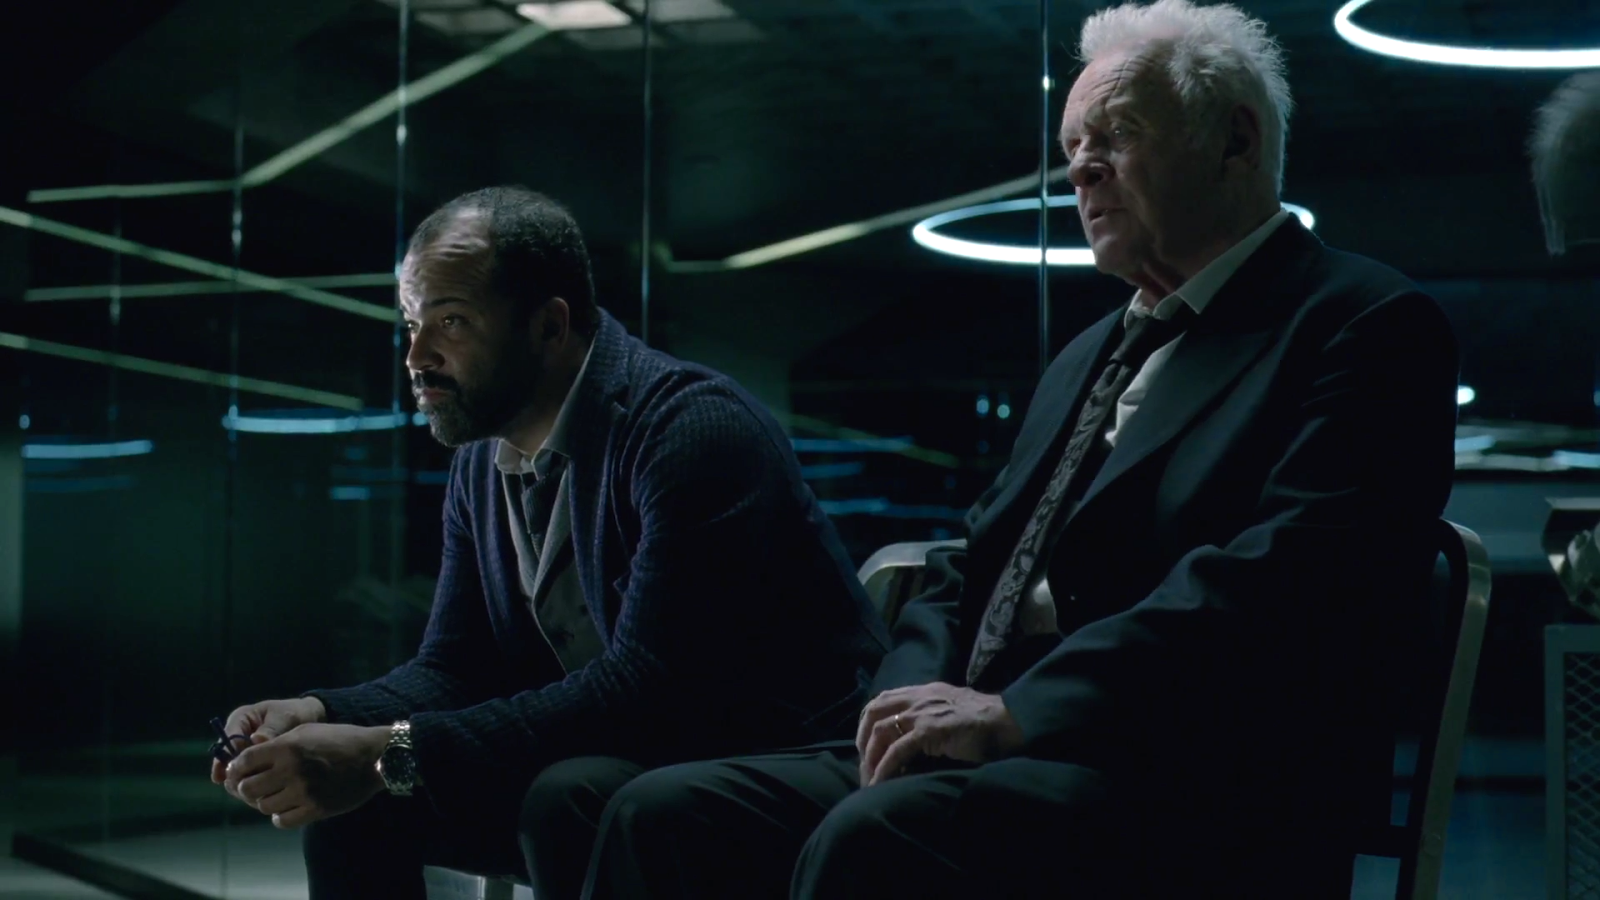 Bernard Lowe and Dr. Robert Ford on Westworld